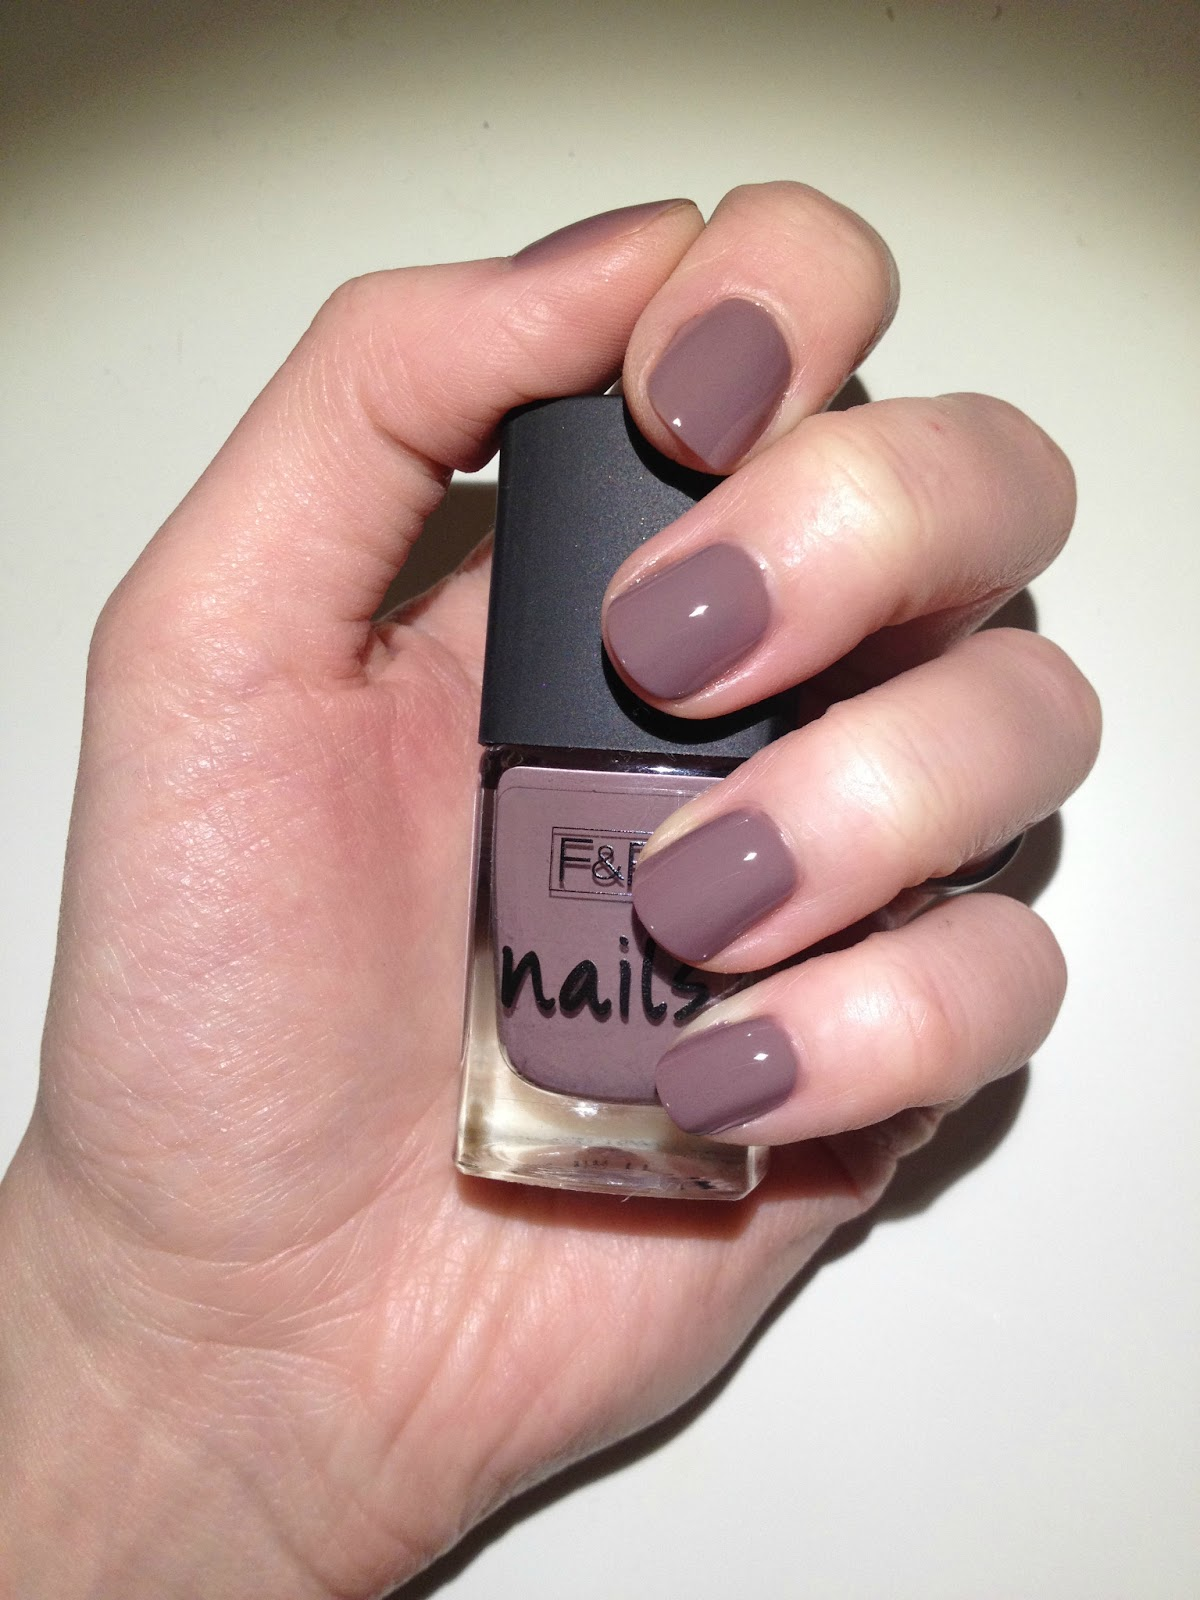 Today´s nail polish